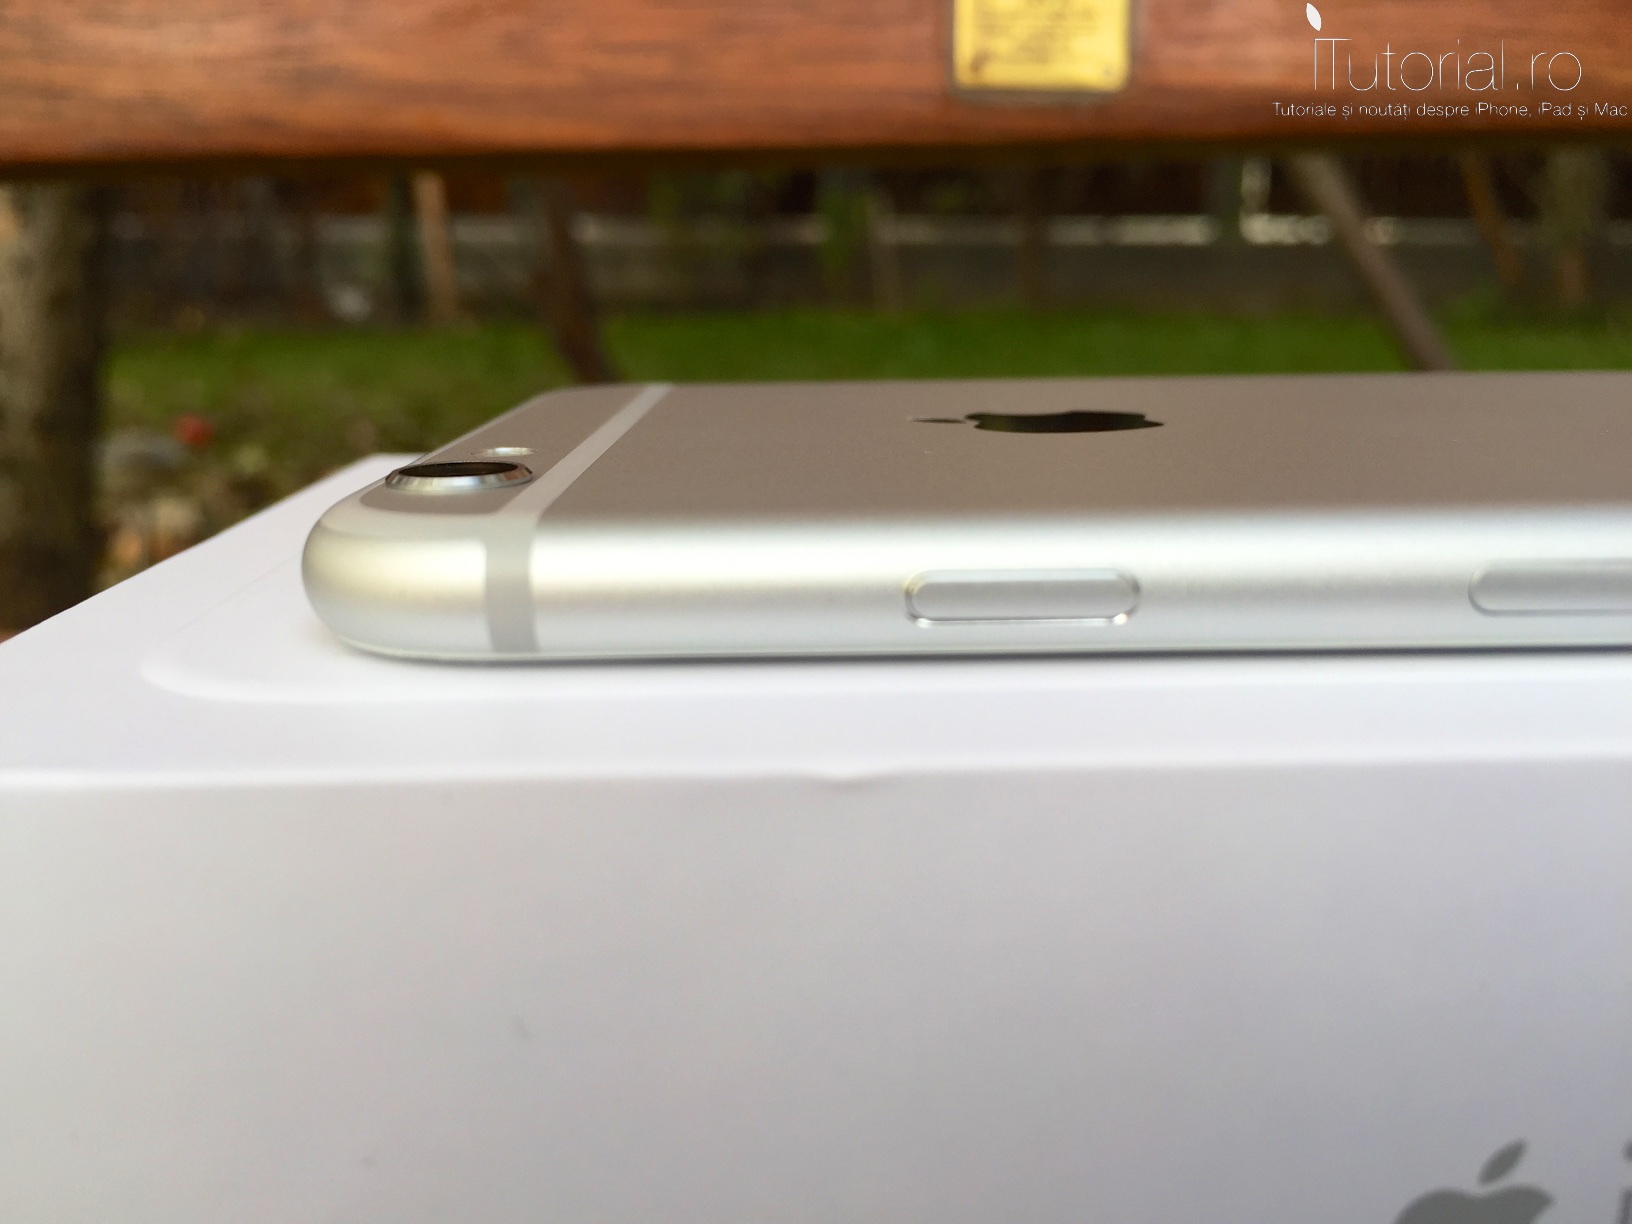 iphone 6 plus review #itutorial.ro (14)